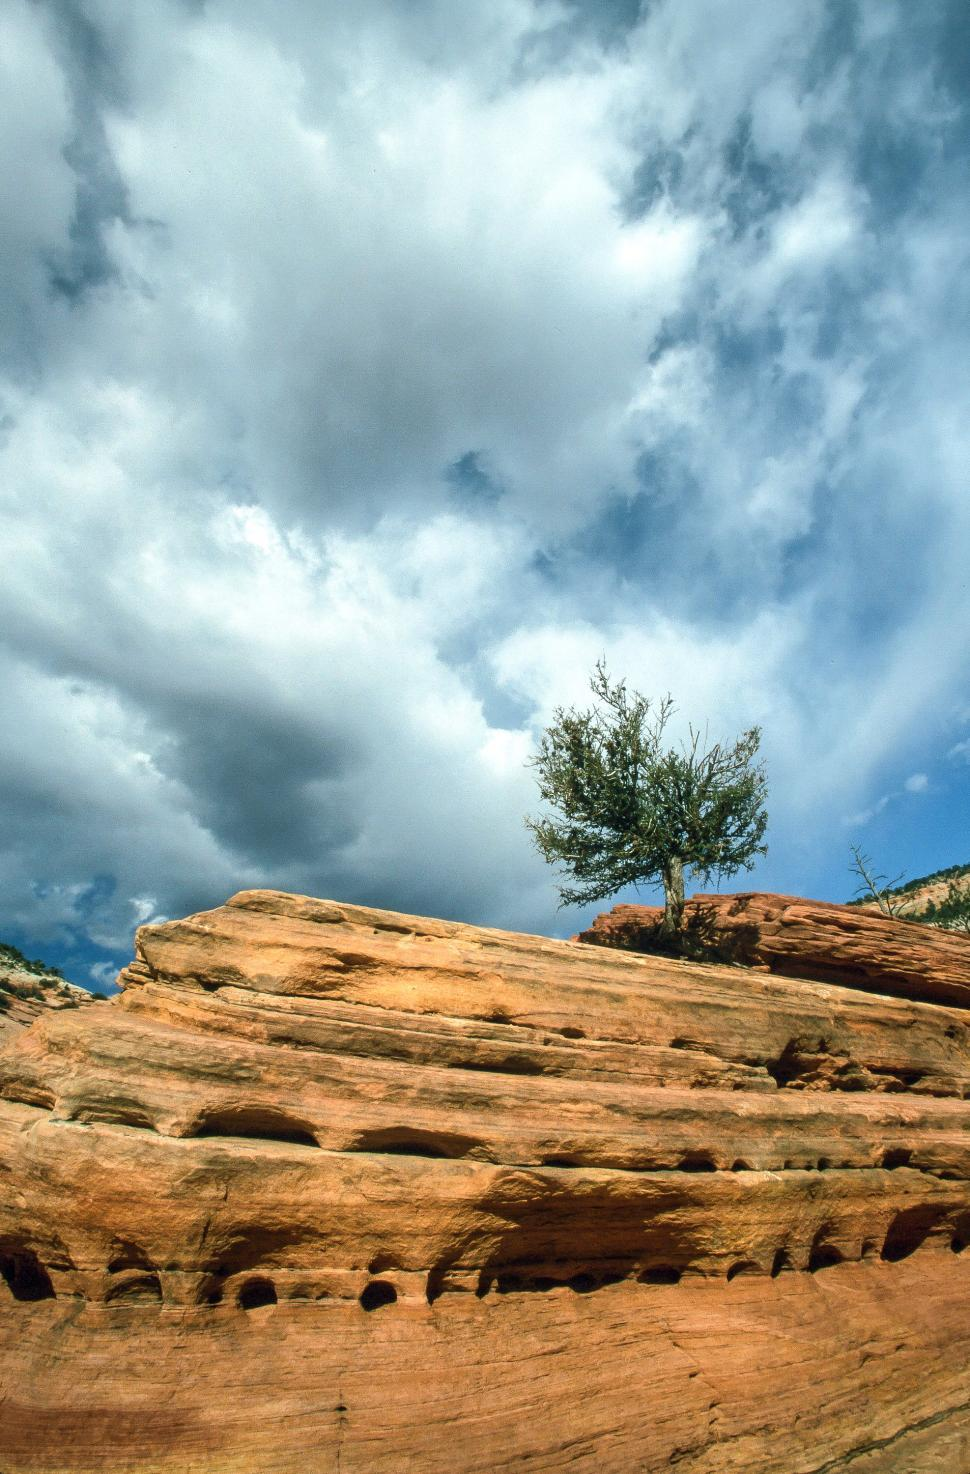 Download Free Stock HD Photo of Erosion at Zion National Park Online